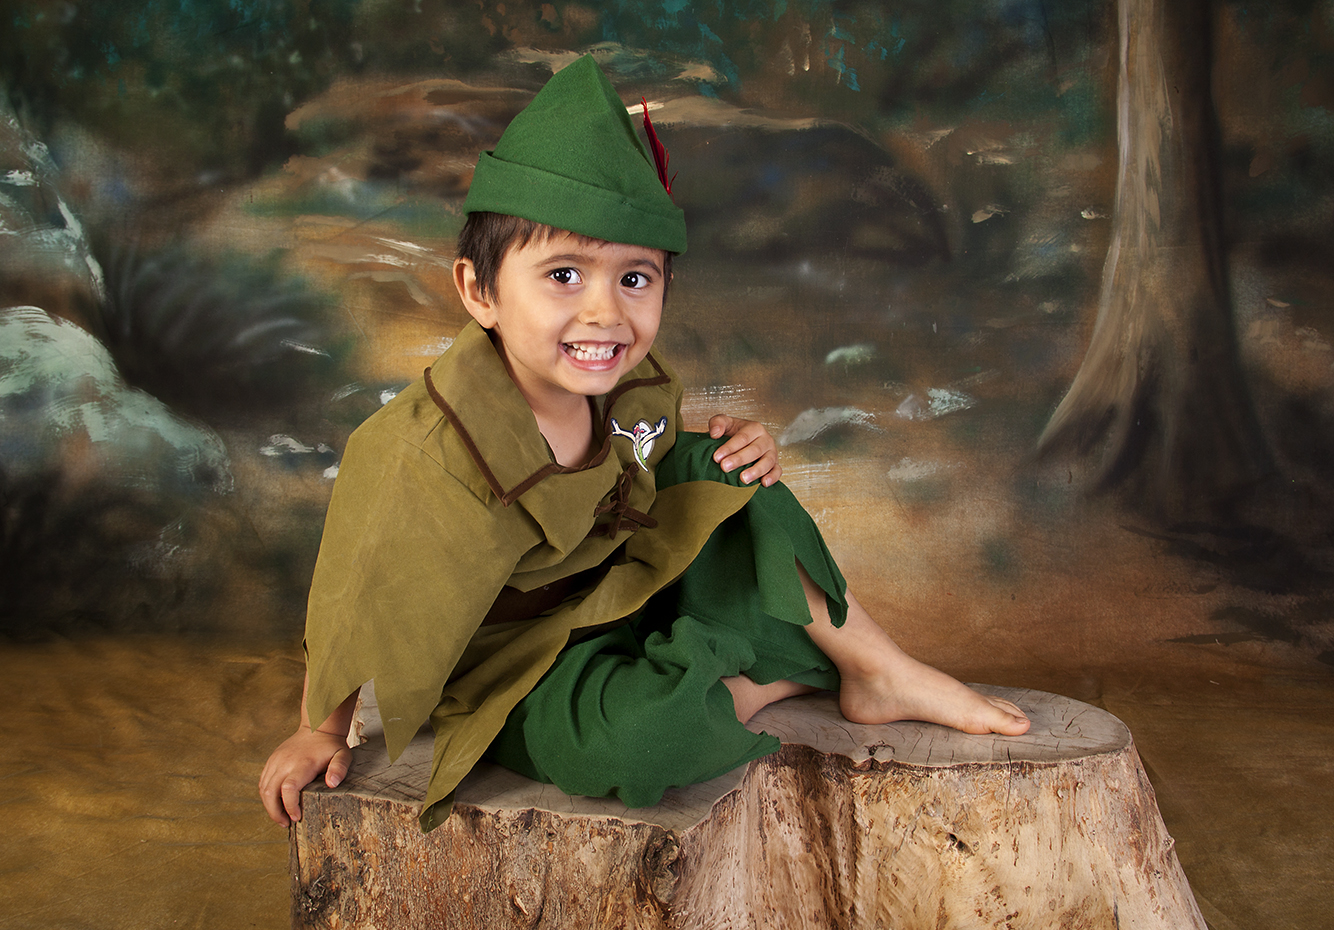 peter pan,pixie, robin hood in the forest on painted background